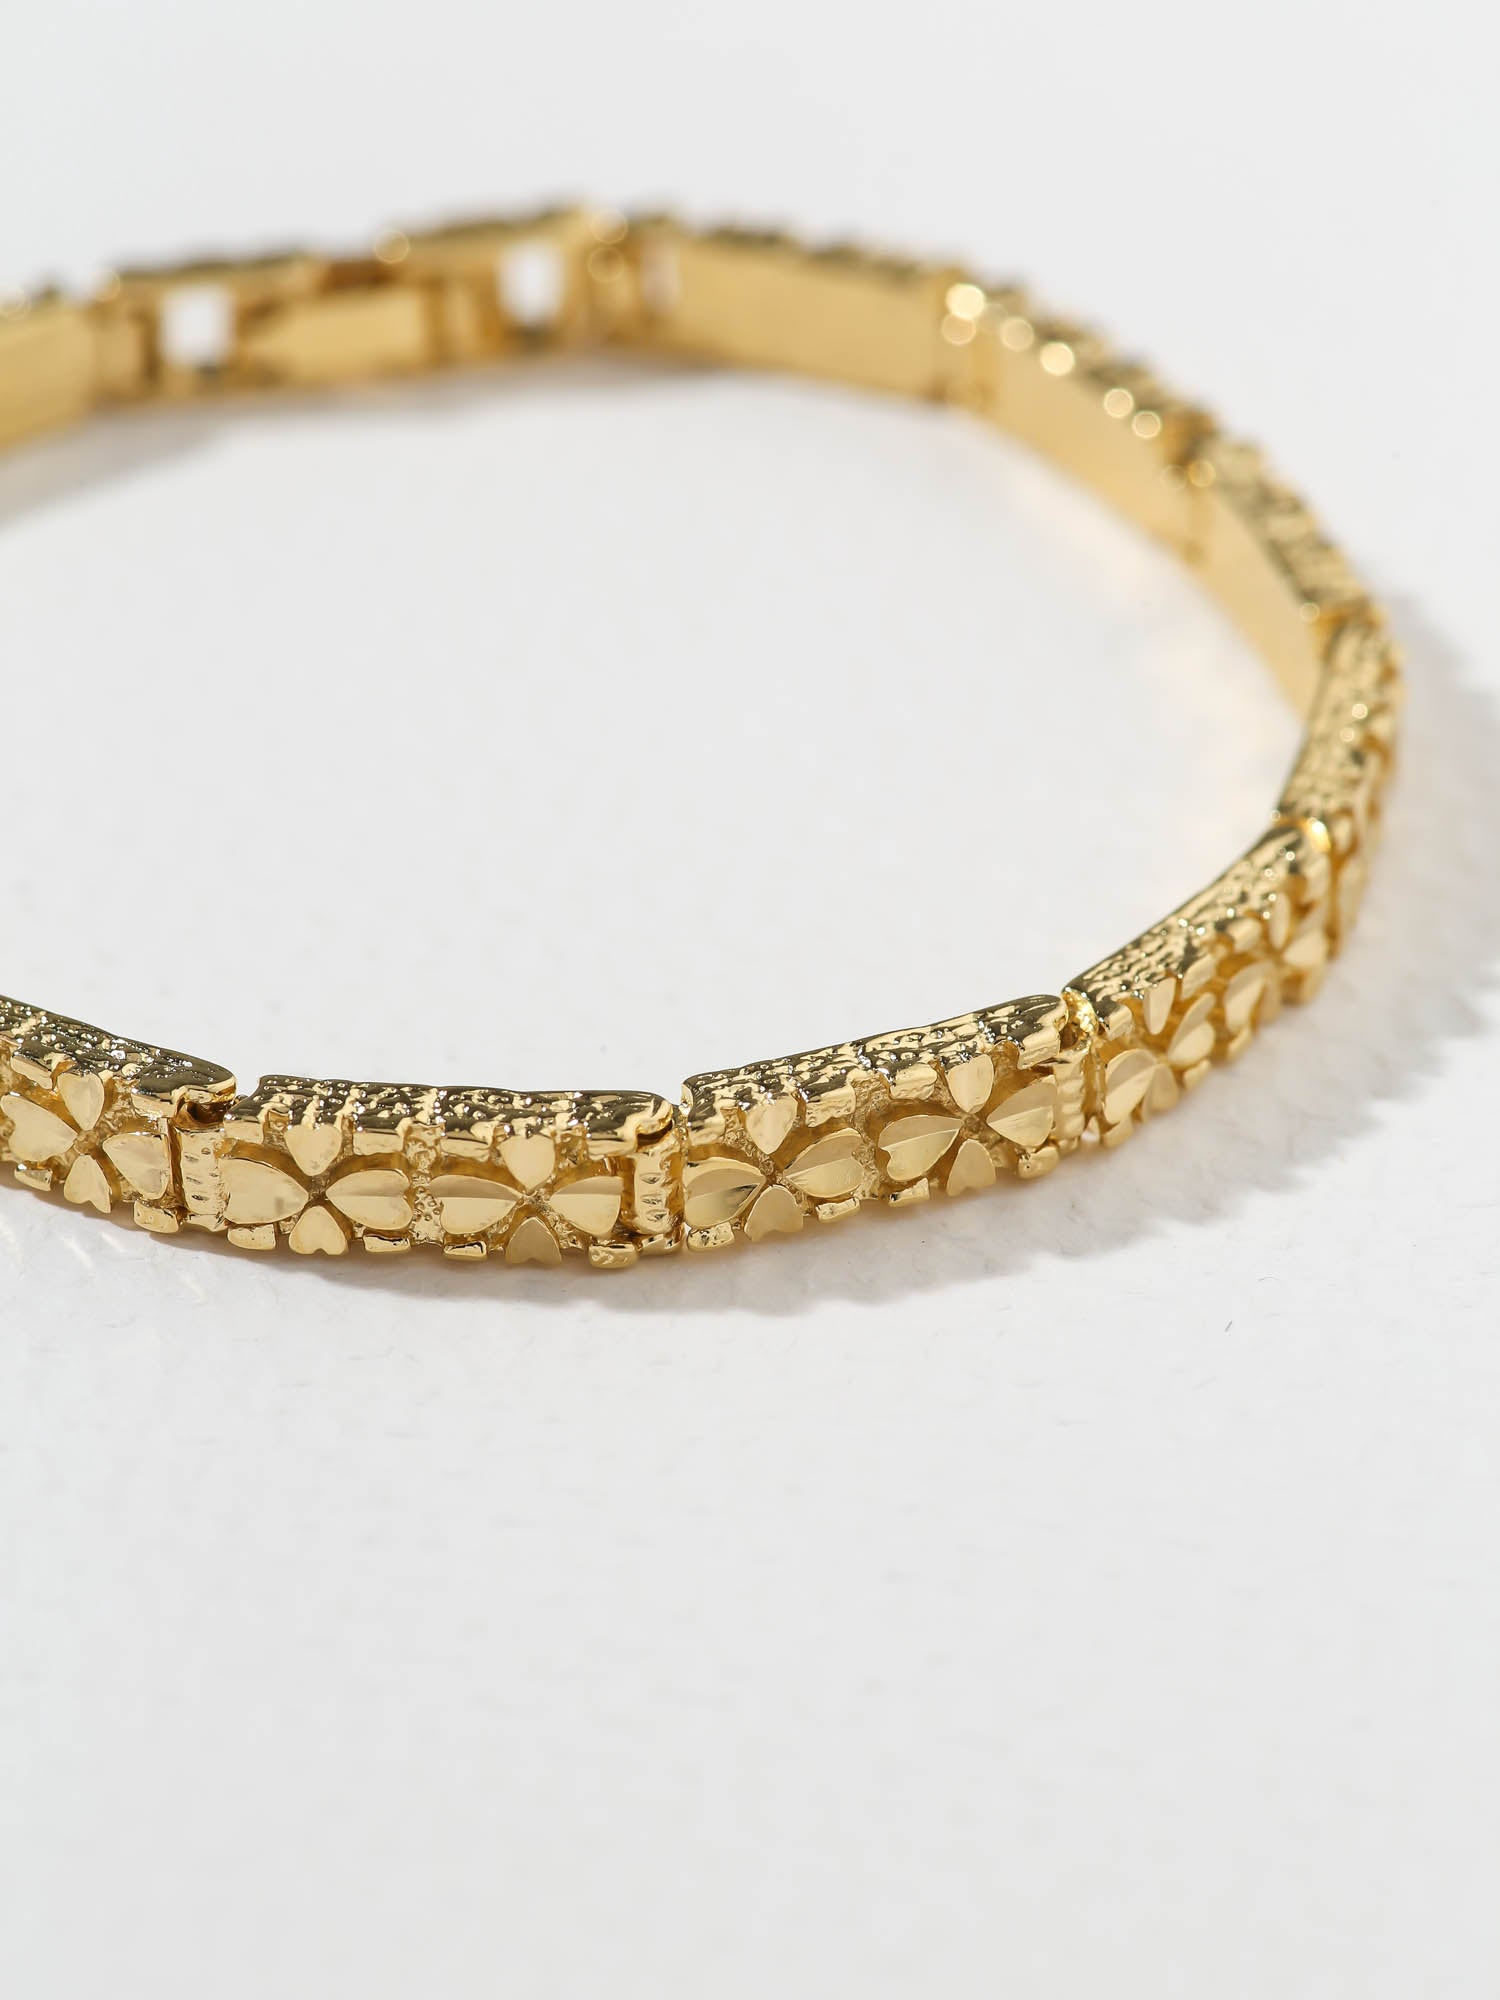 The Golden Idol Bracelet